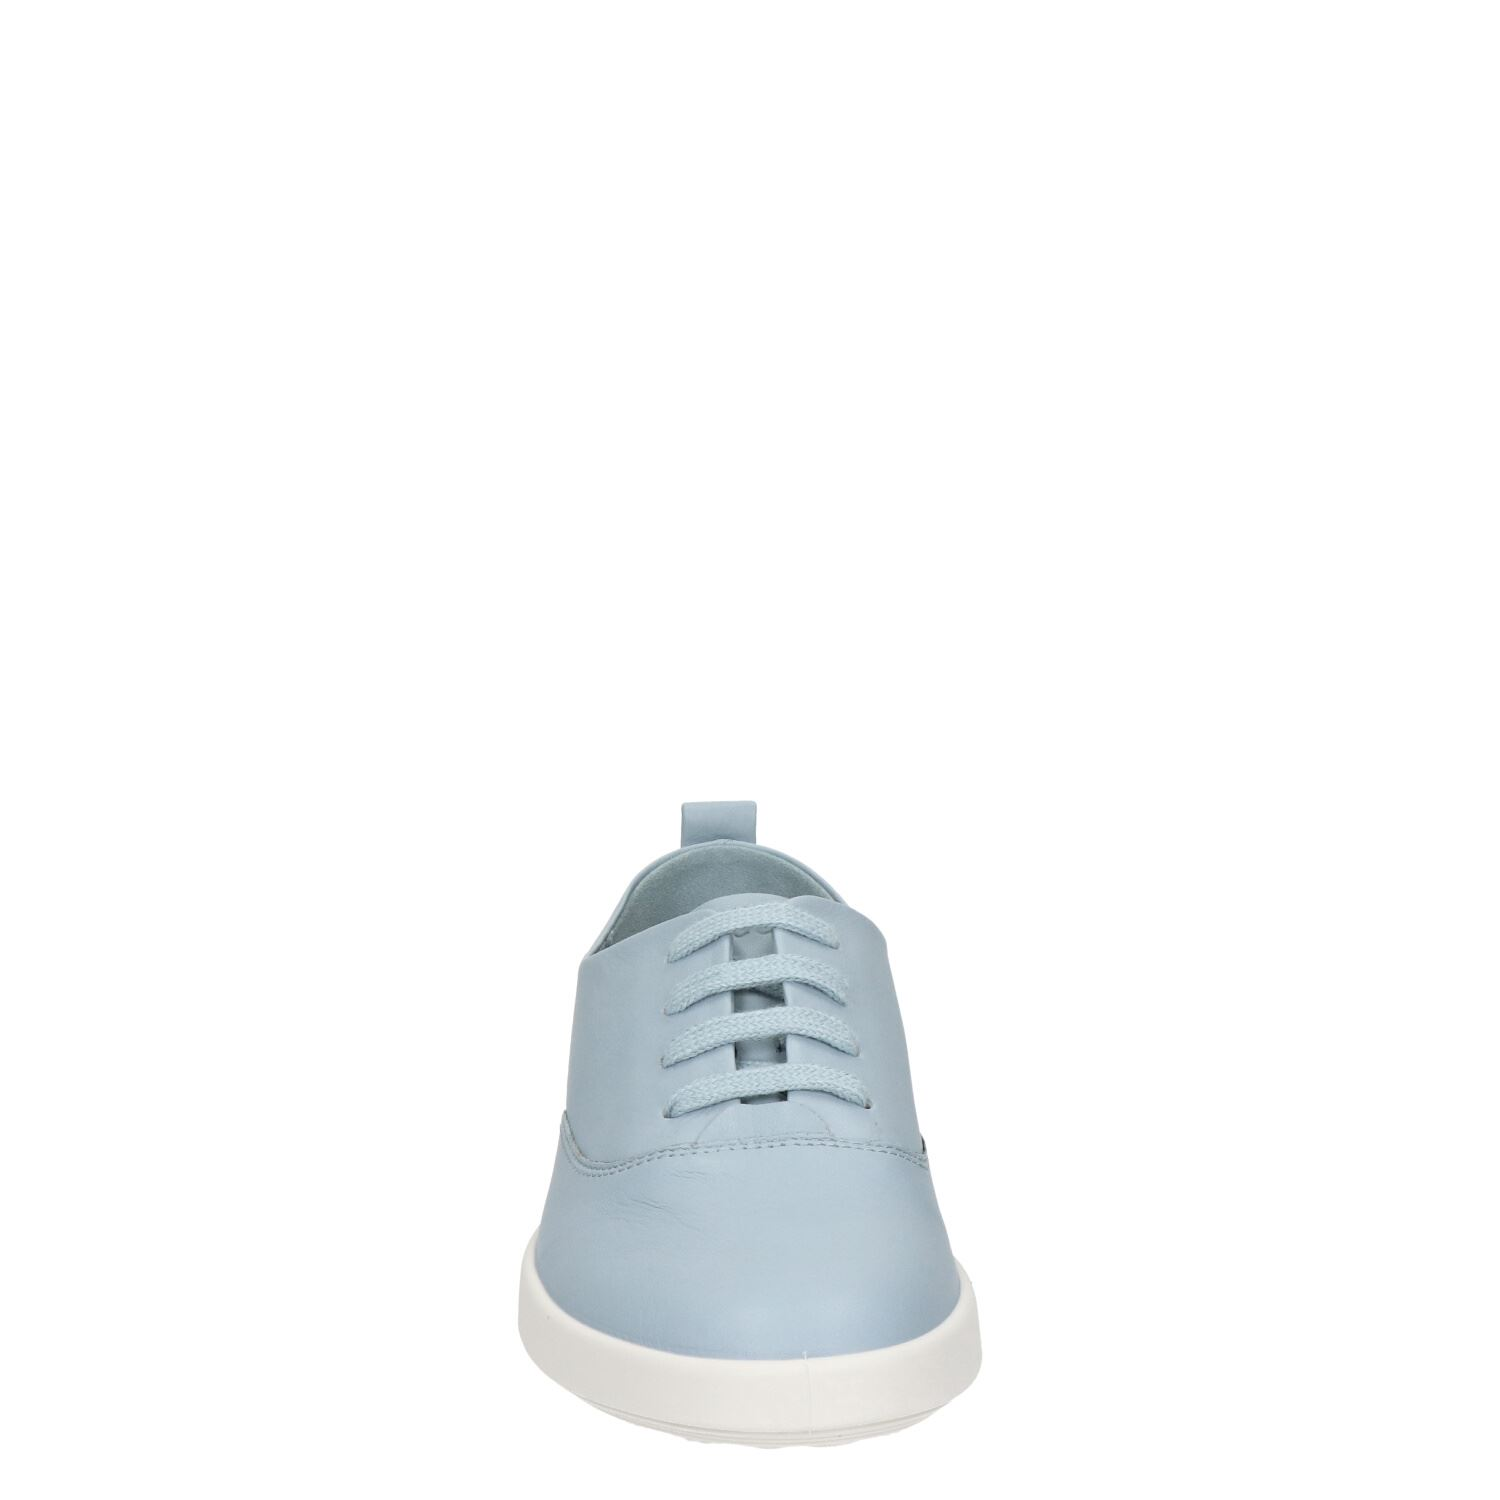 Ecco Leisure - Lage sneakers voor dames - Blauw lY3v8qB